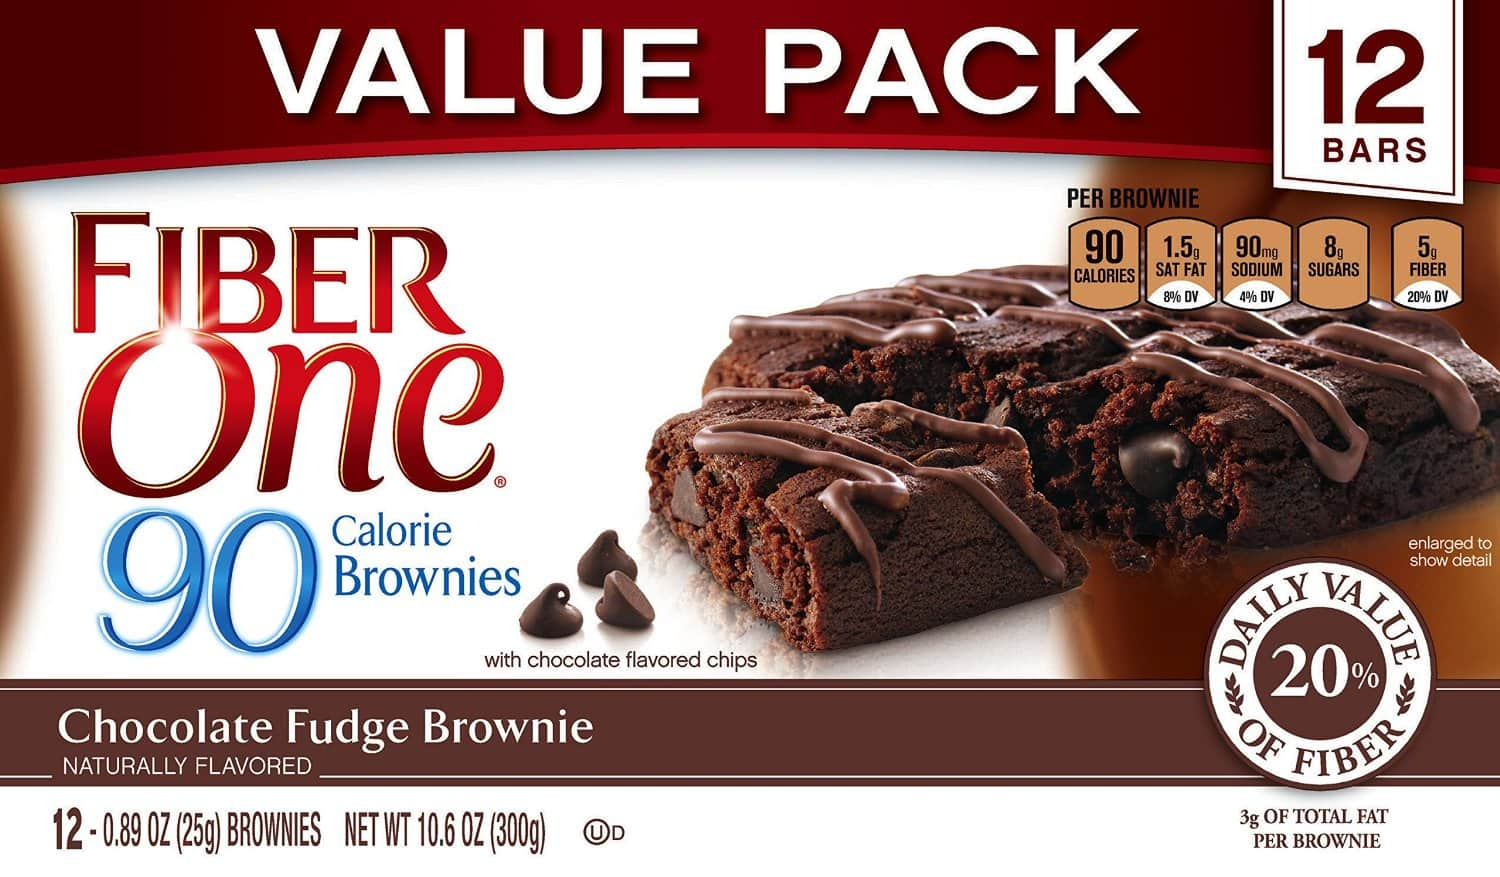 12-Count Fiber One Soft-Baked Bars (Chocolate Fudge Brownie)  $3.50 + Free Shipping